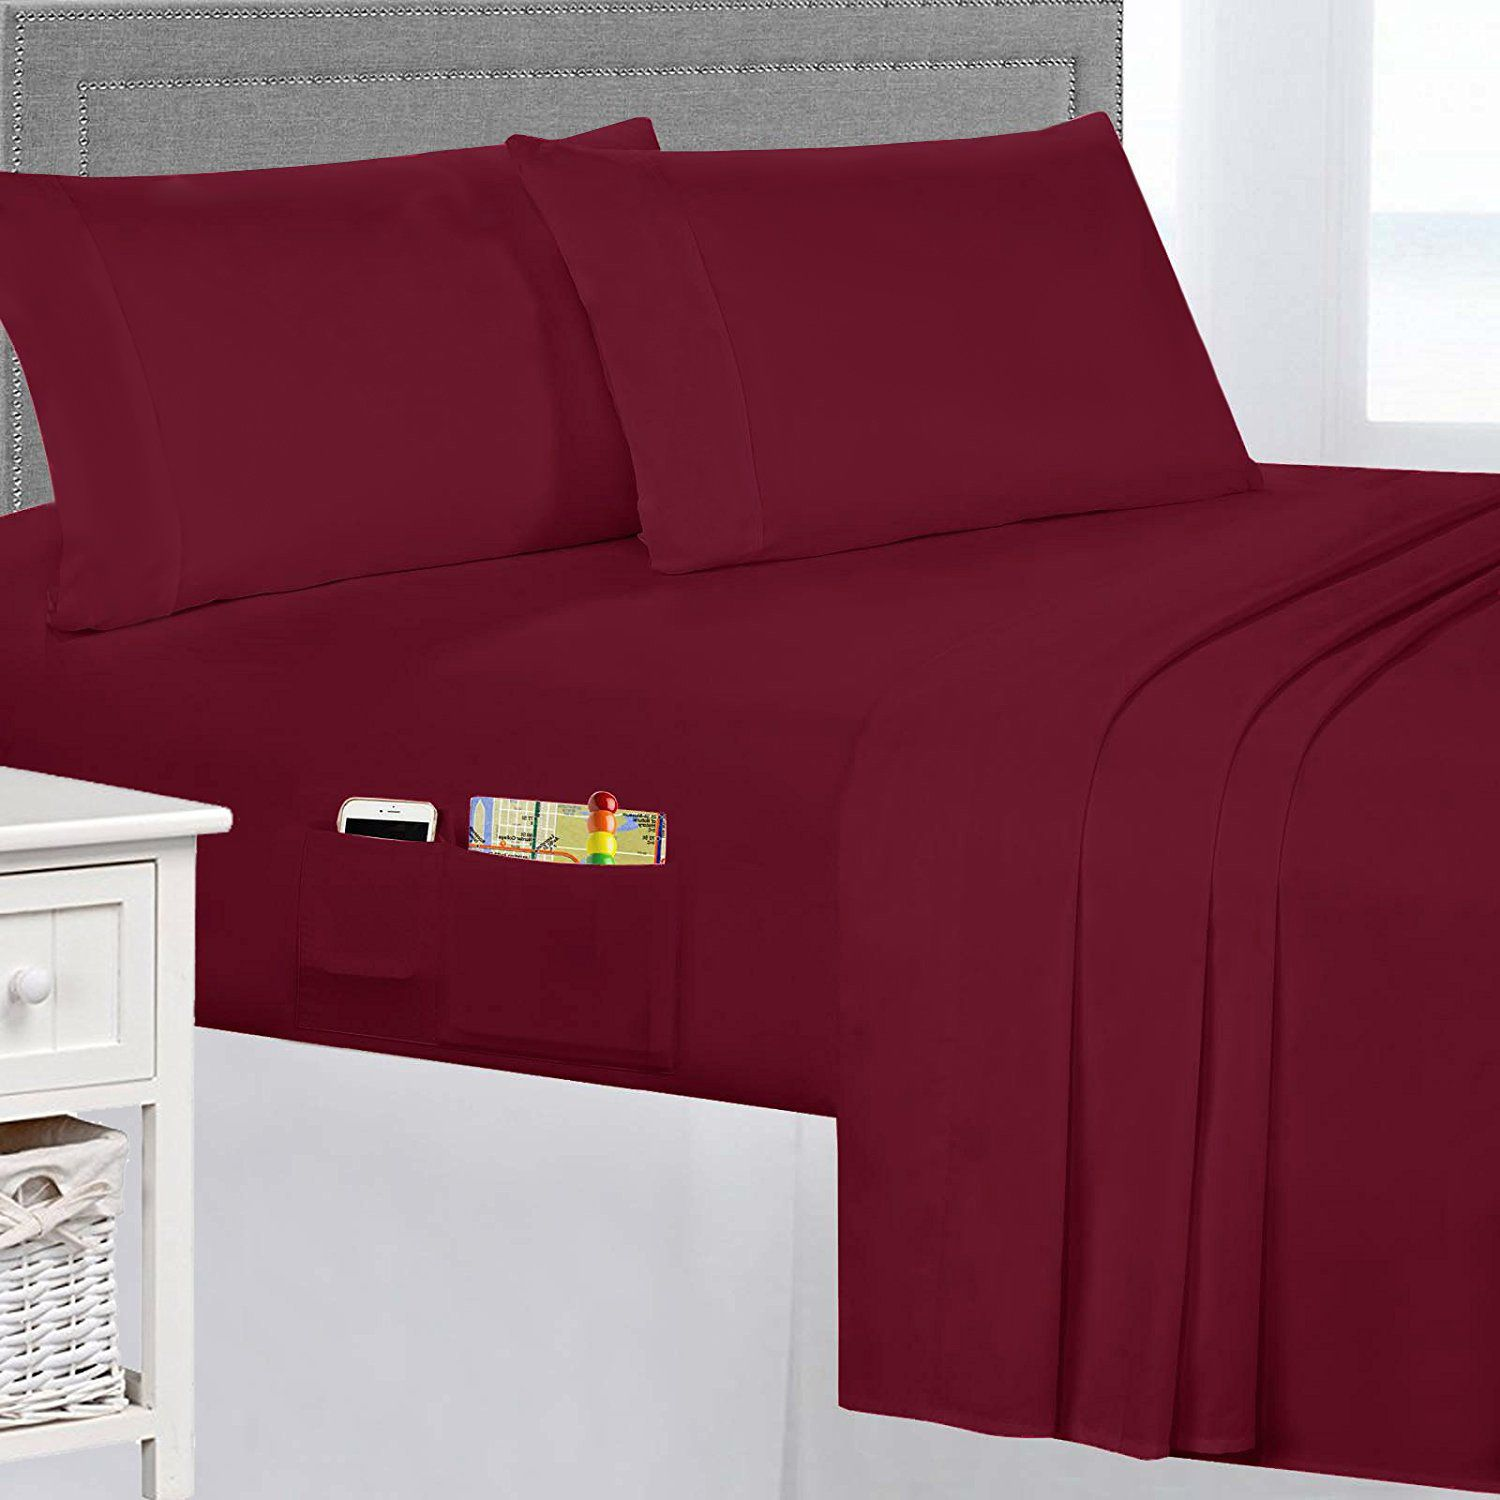 Samia smart luxury piece thread count sheet set products